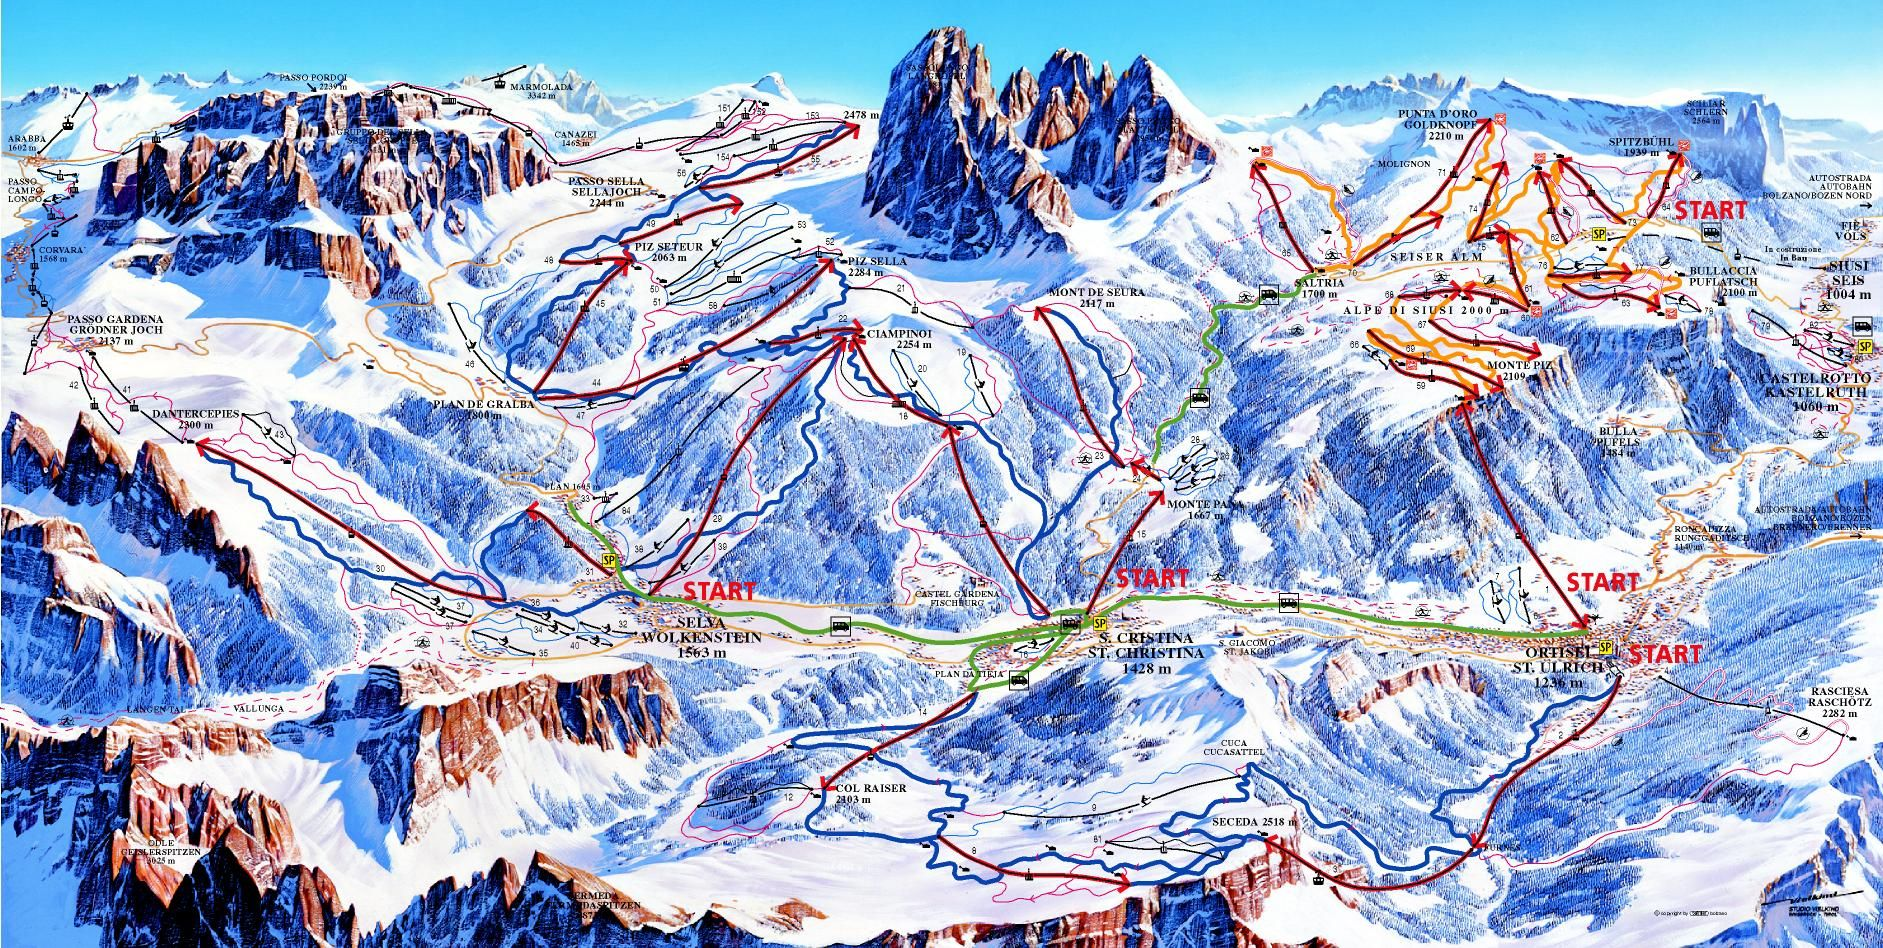 Map Of Dolomiti Superski Snowboarding Trip Ski Resort Skiing